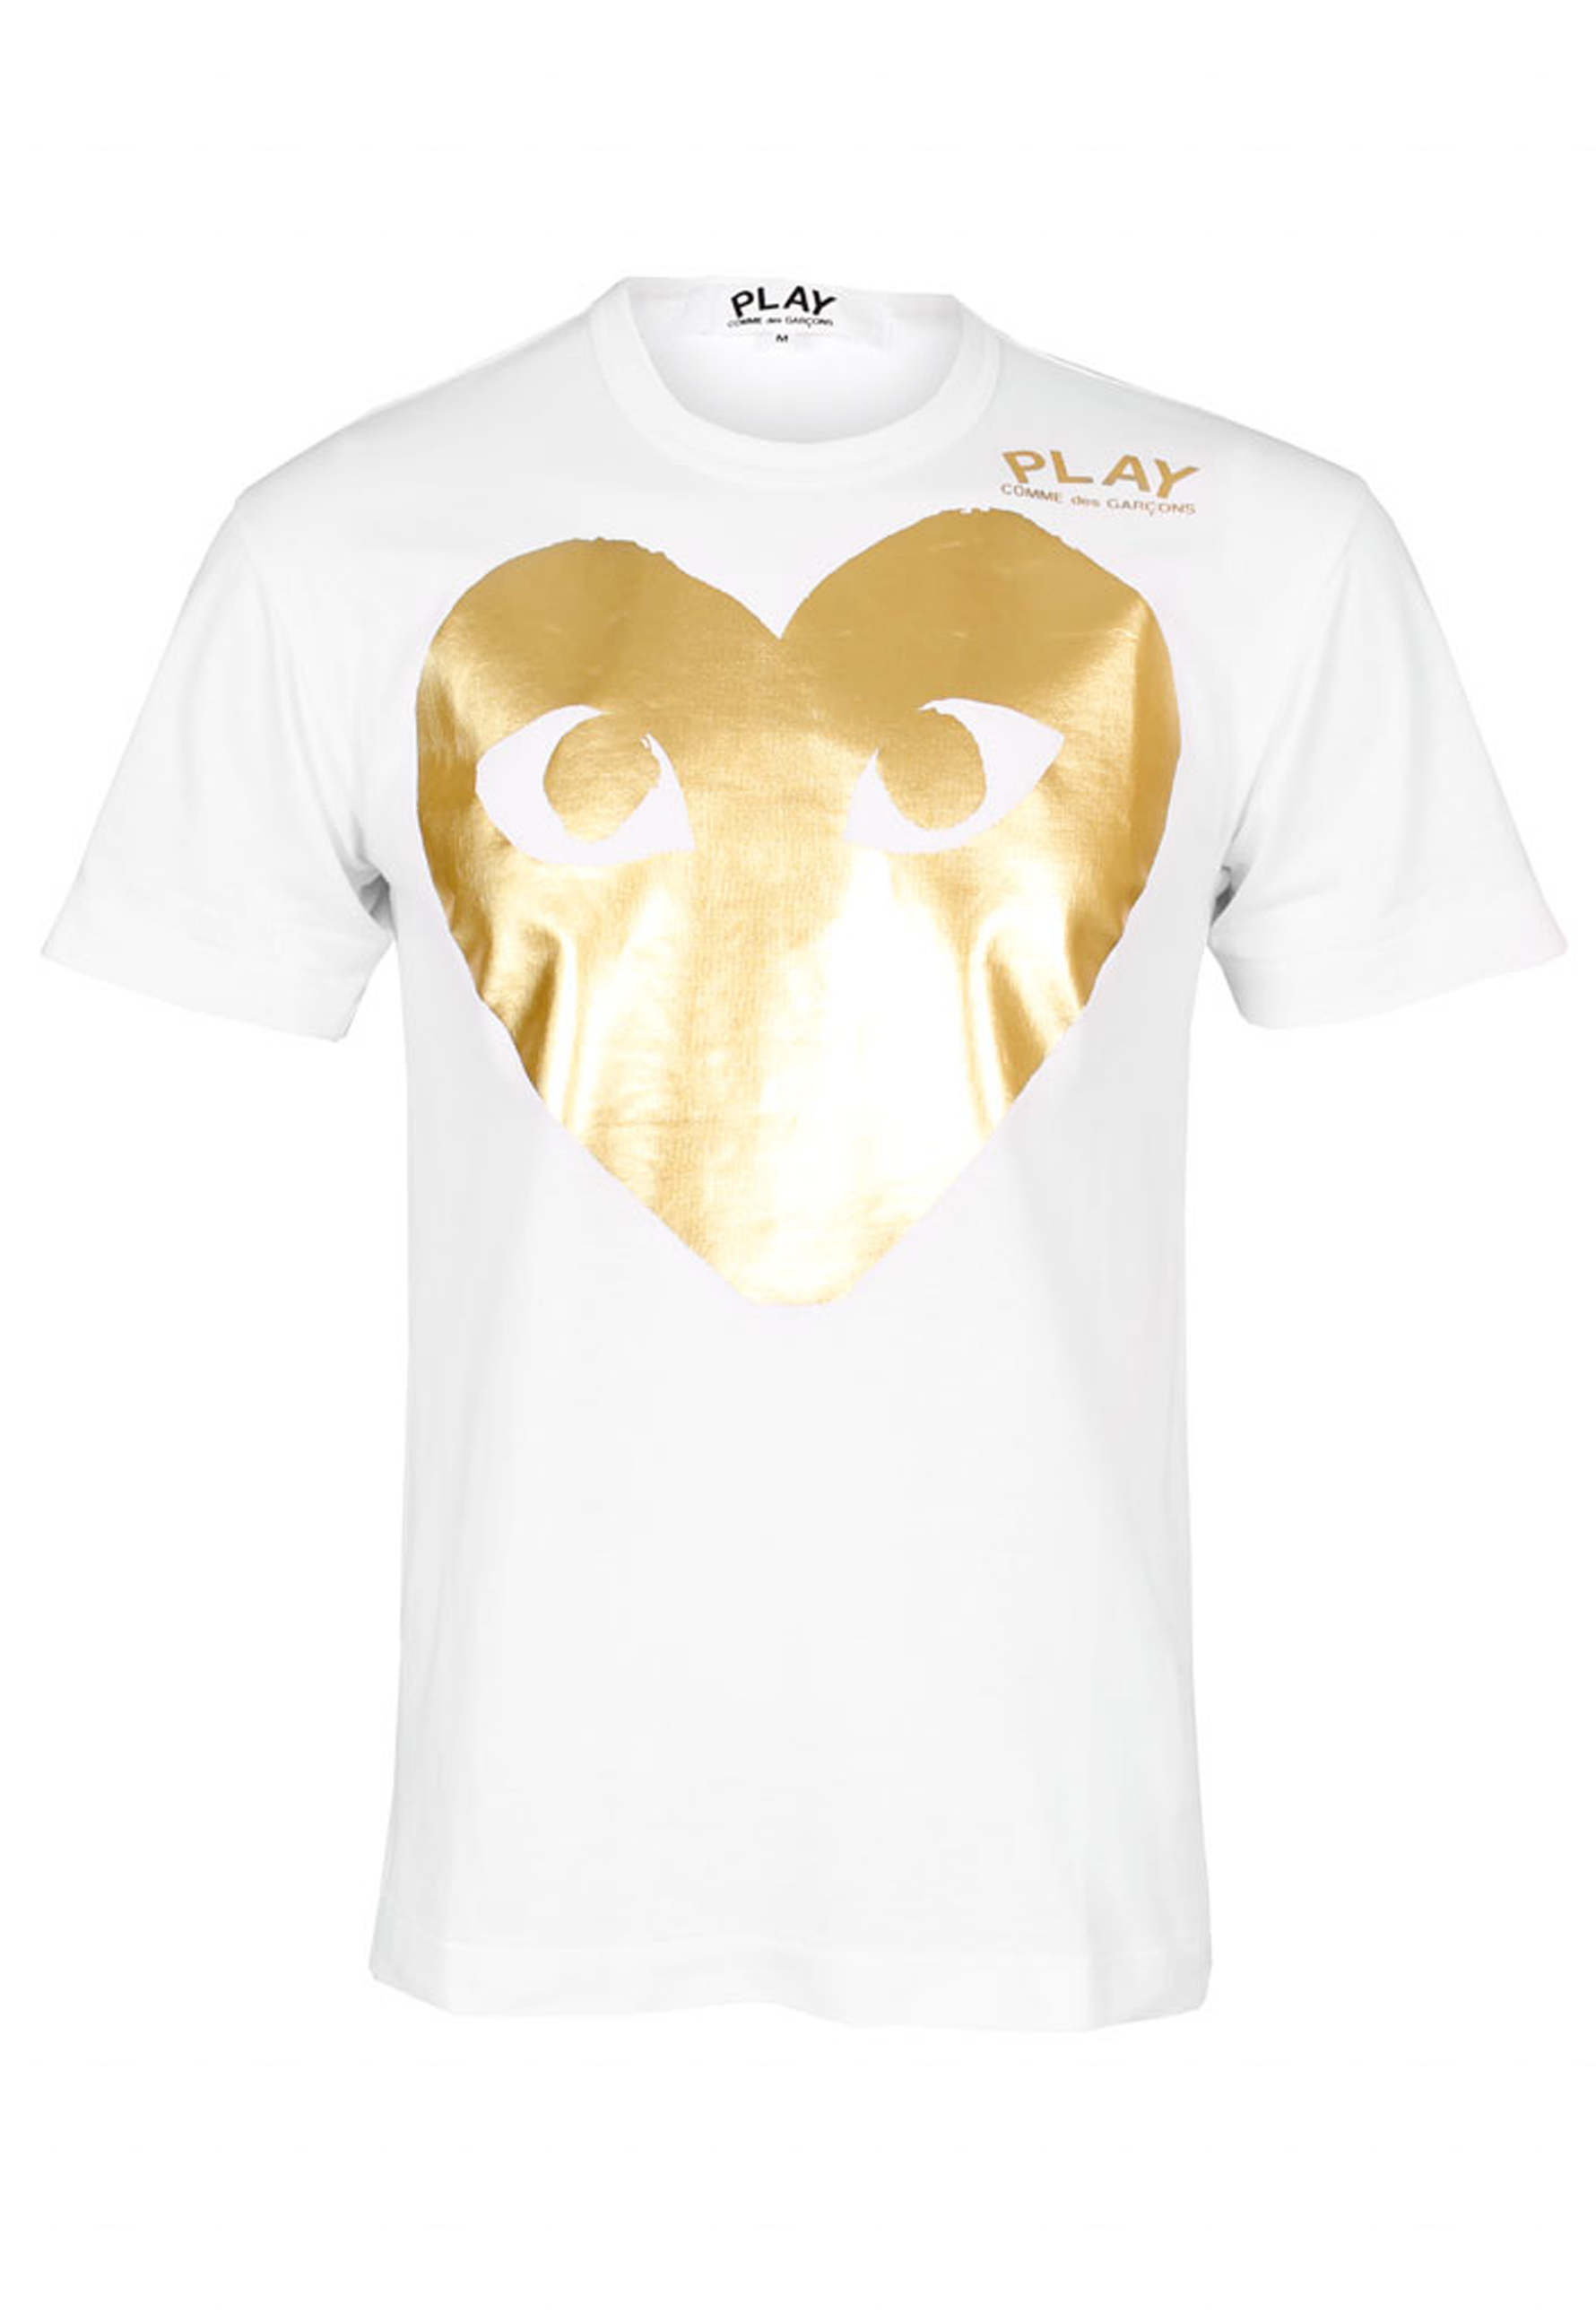 a4889ddf8 Play Comme des Garçons Mens Large Gold Foil Heart T-shirt White in ...